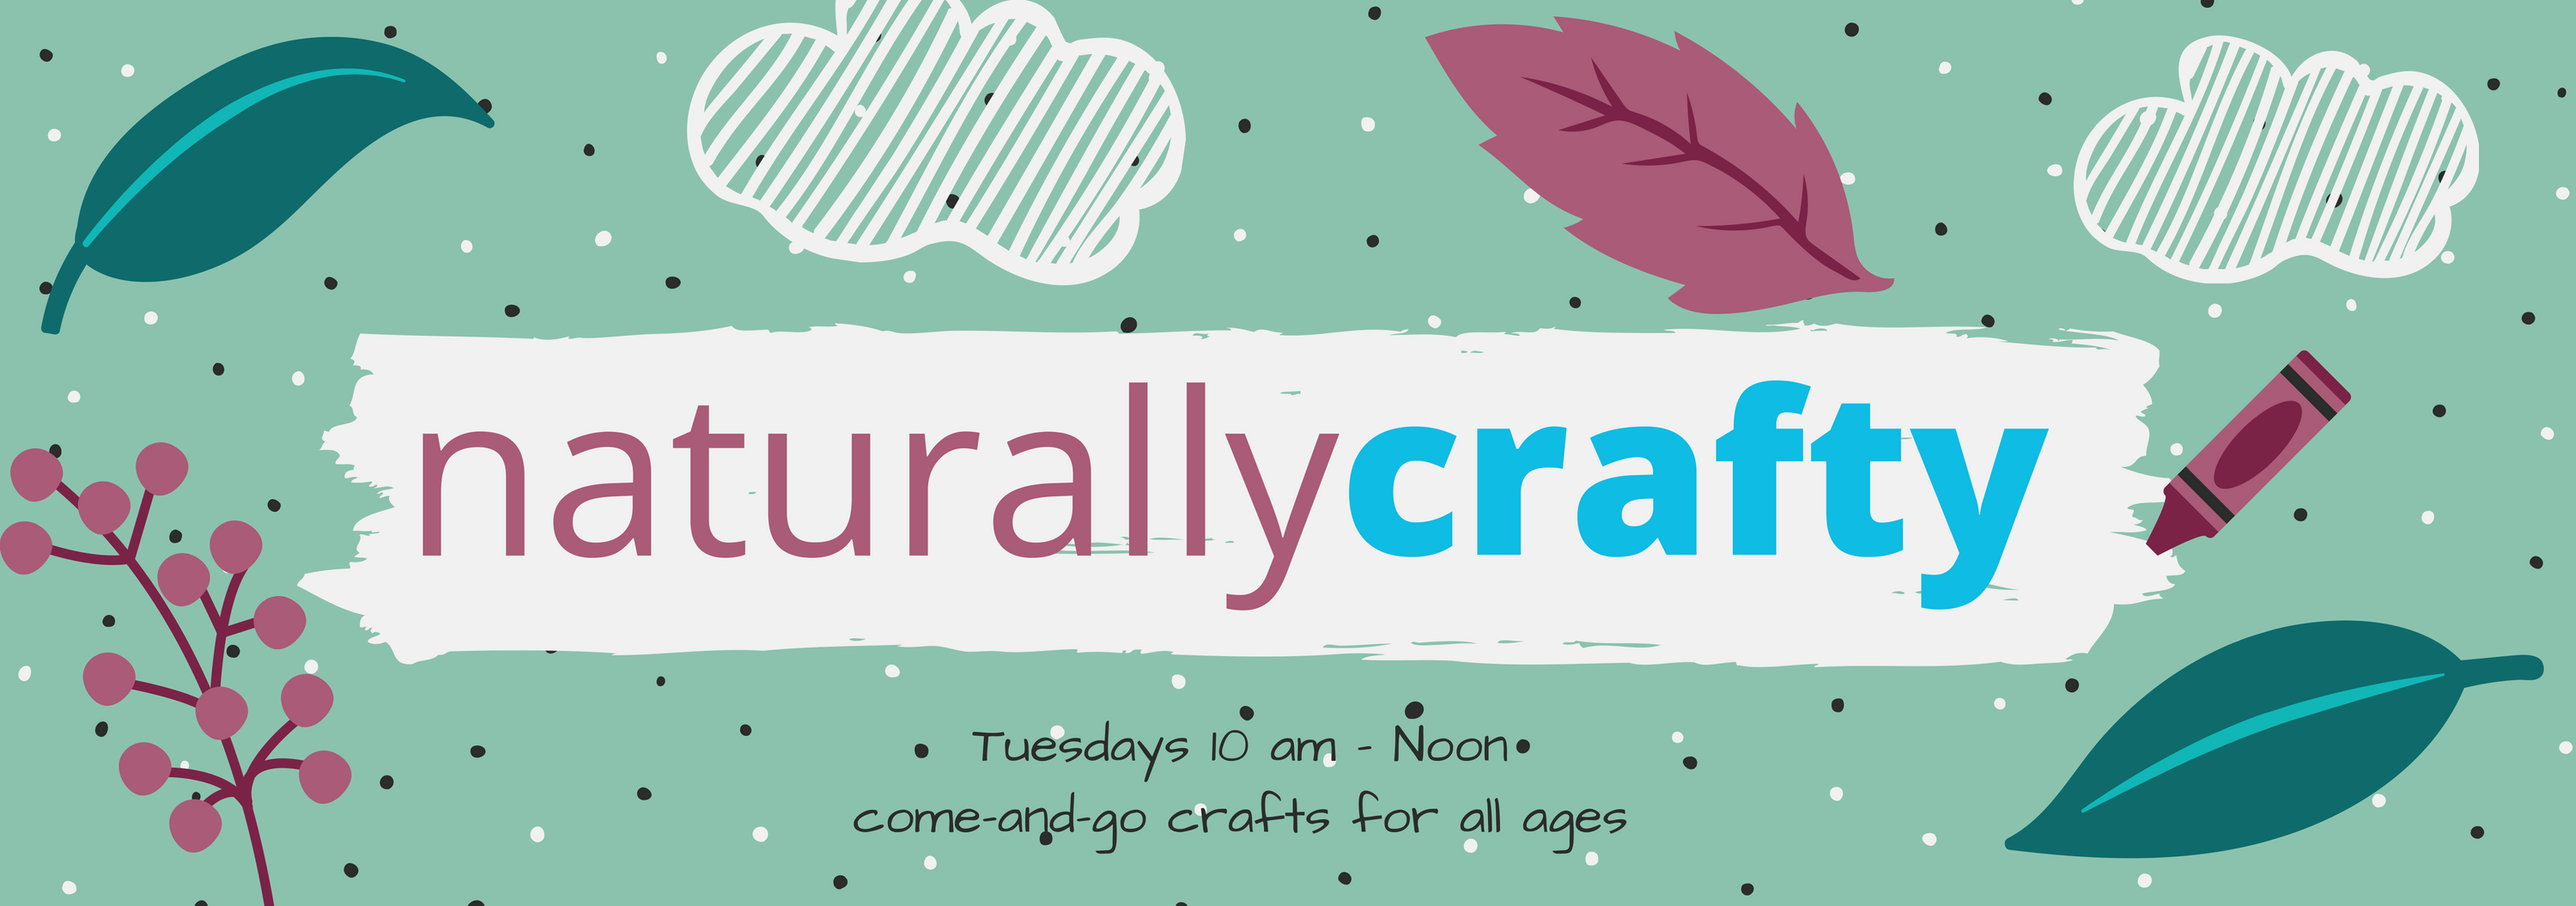 Naturally Crafty (1)